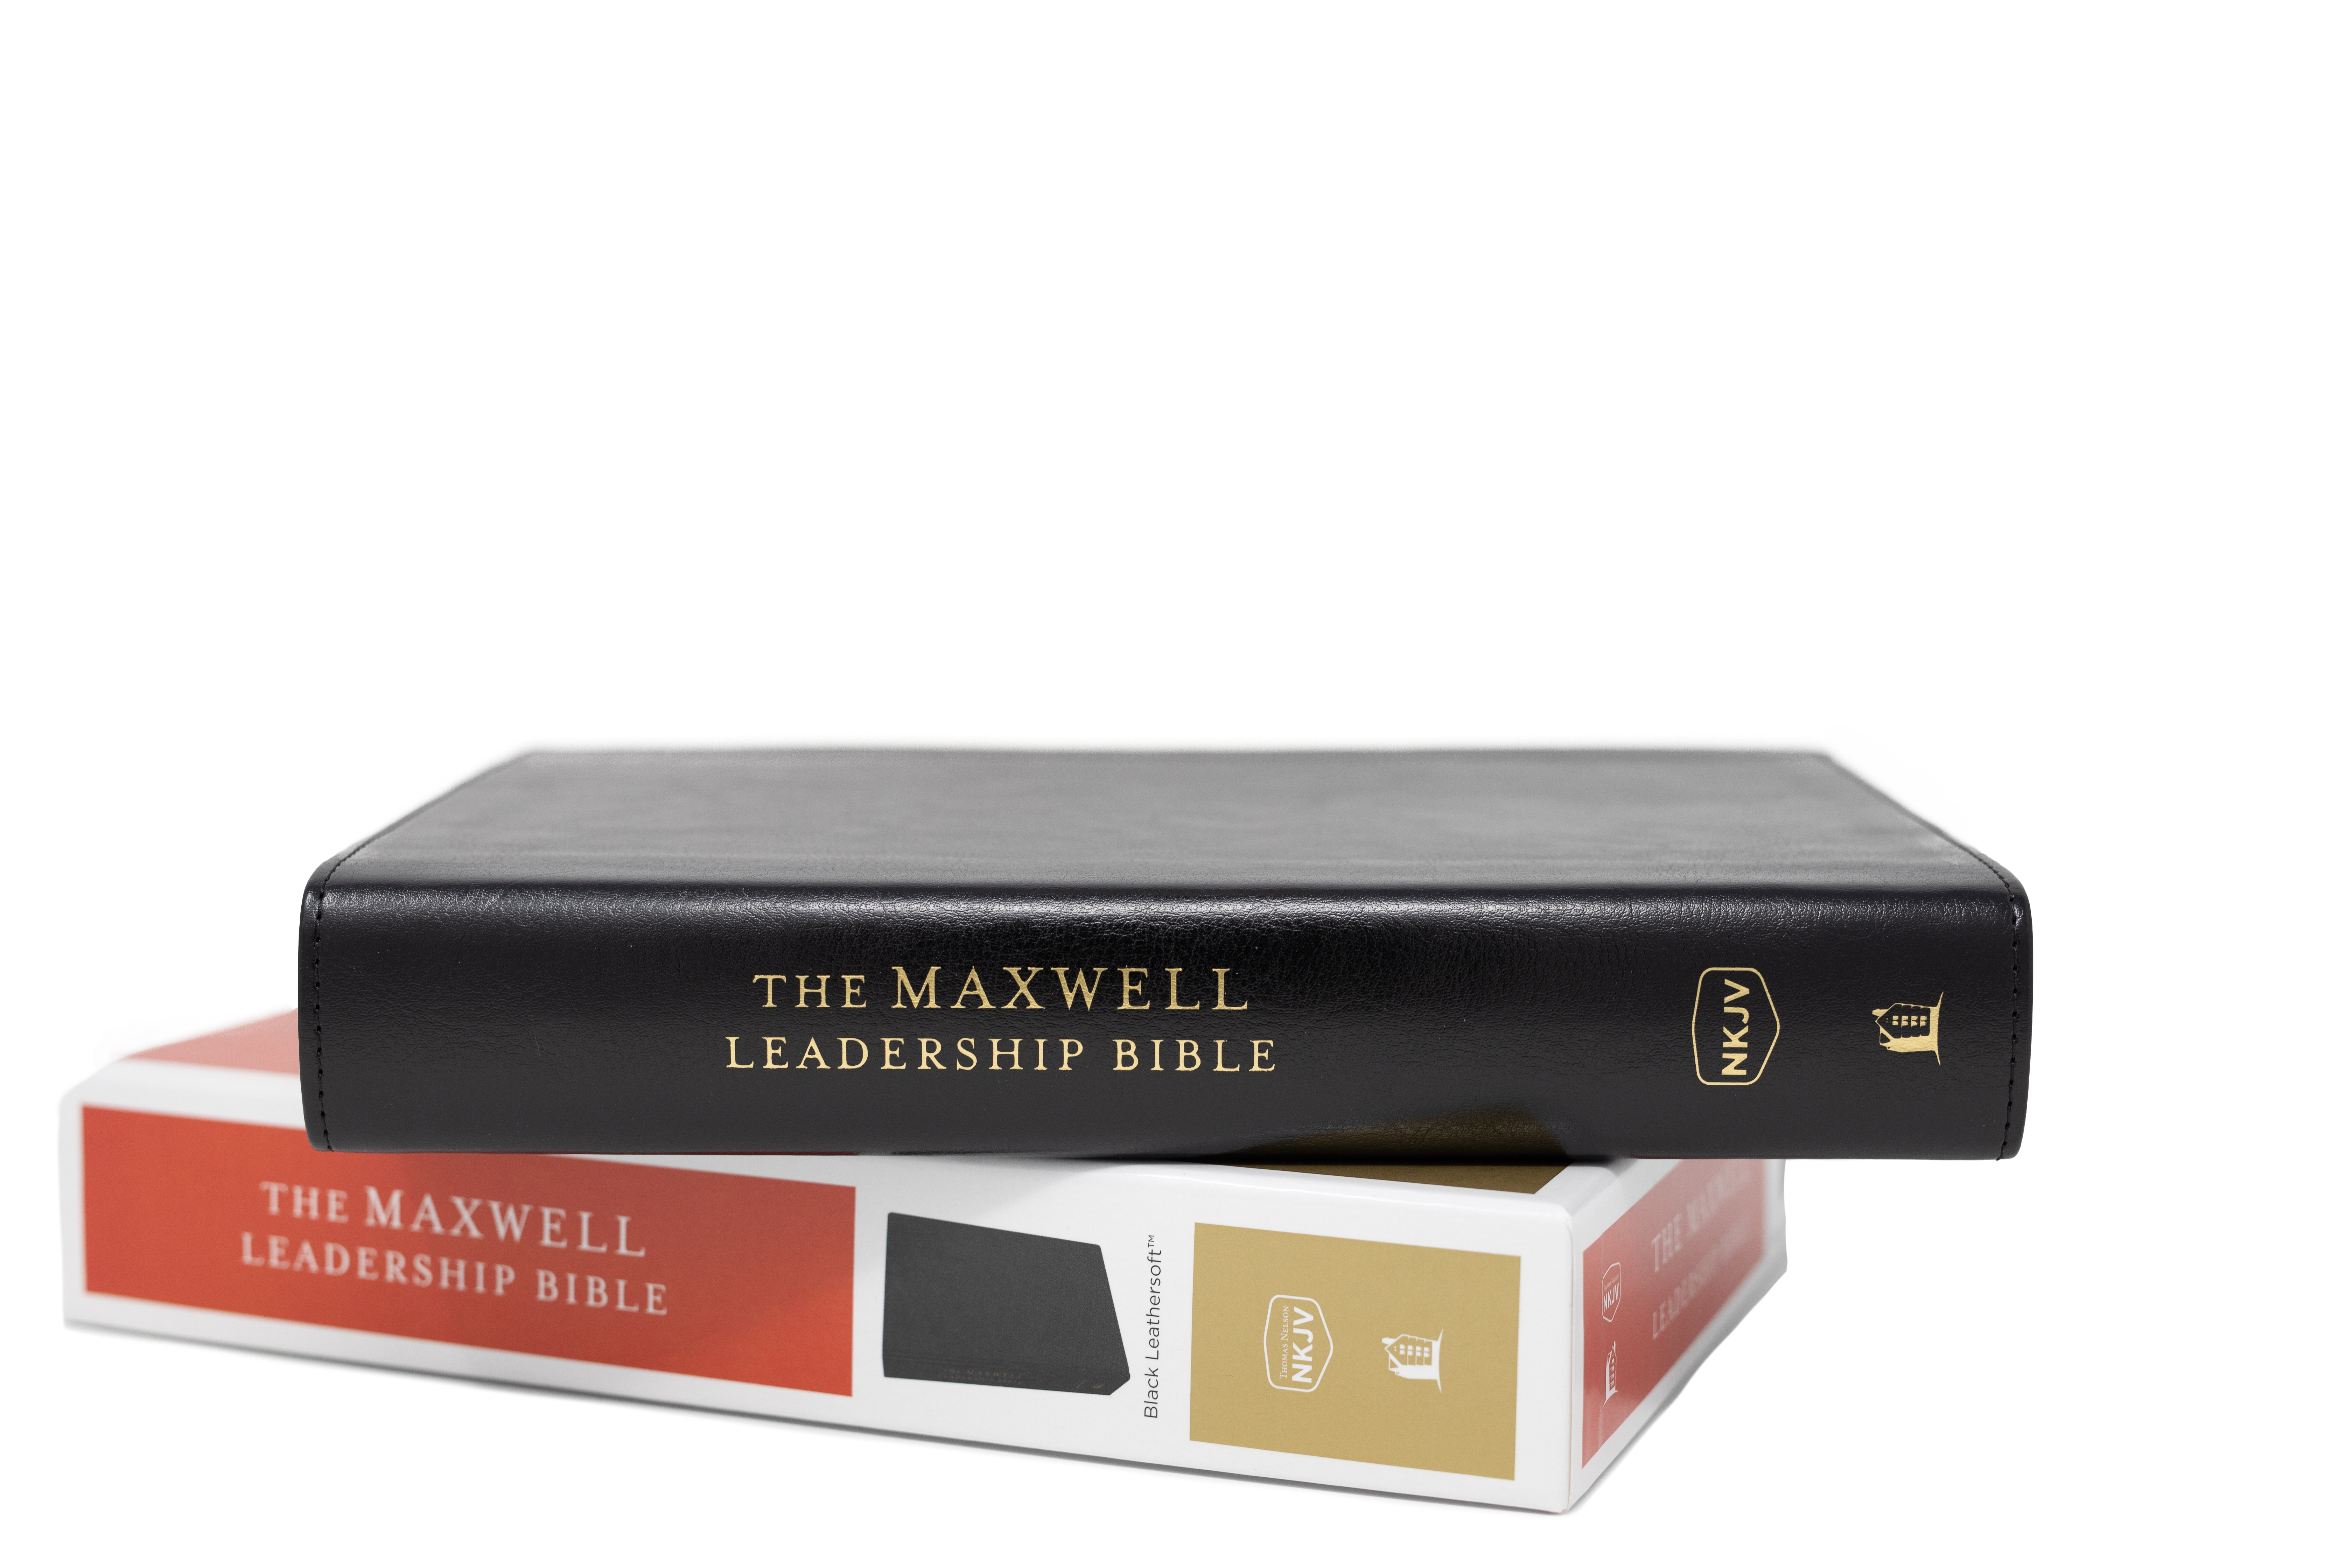 The Maxwell Leadership Bible - NKJV - Third Edition, Black Leathersoft, Comfort Print